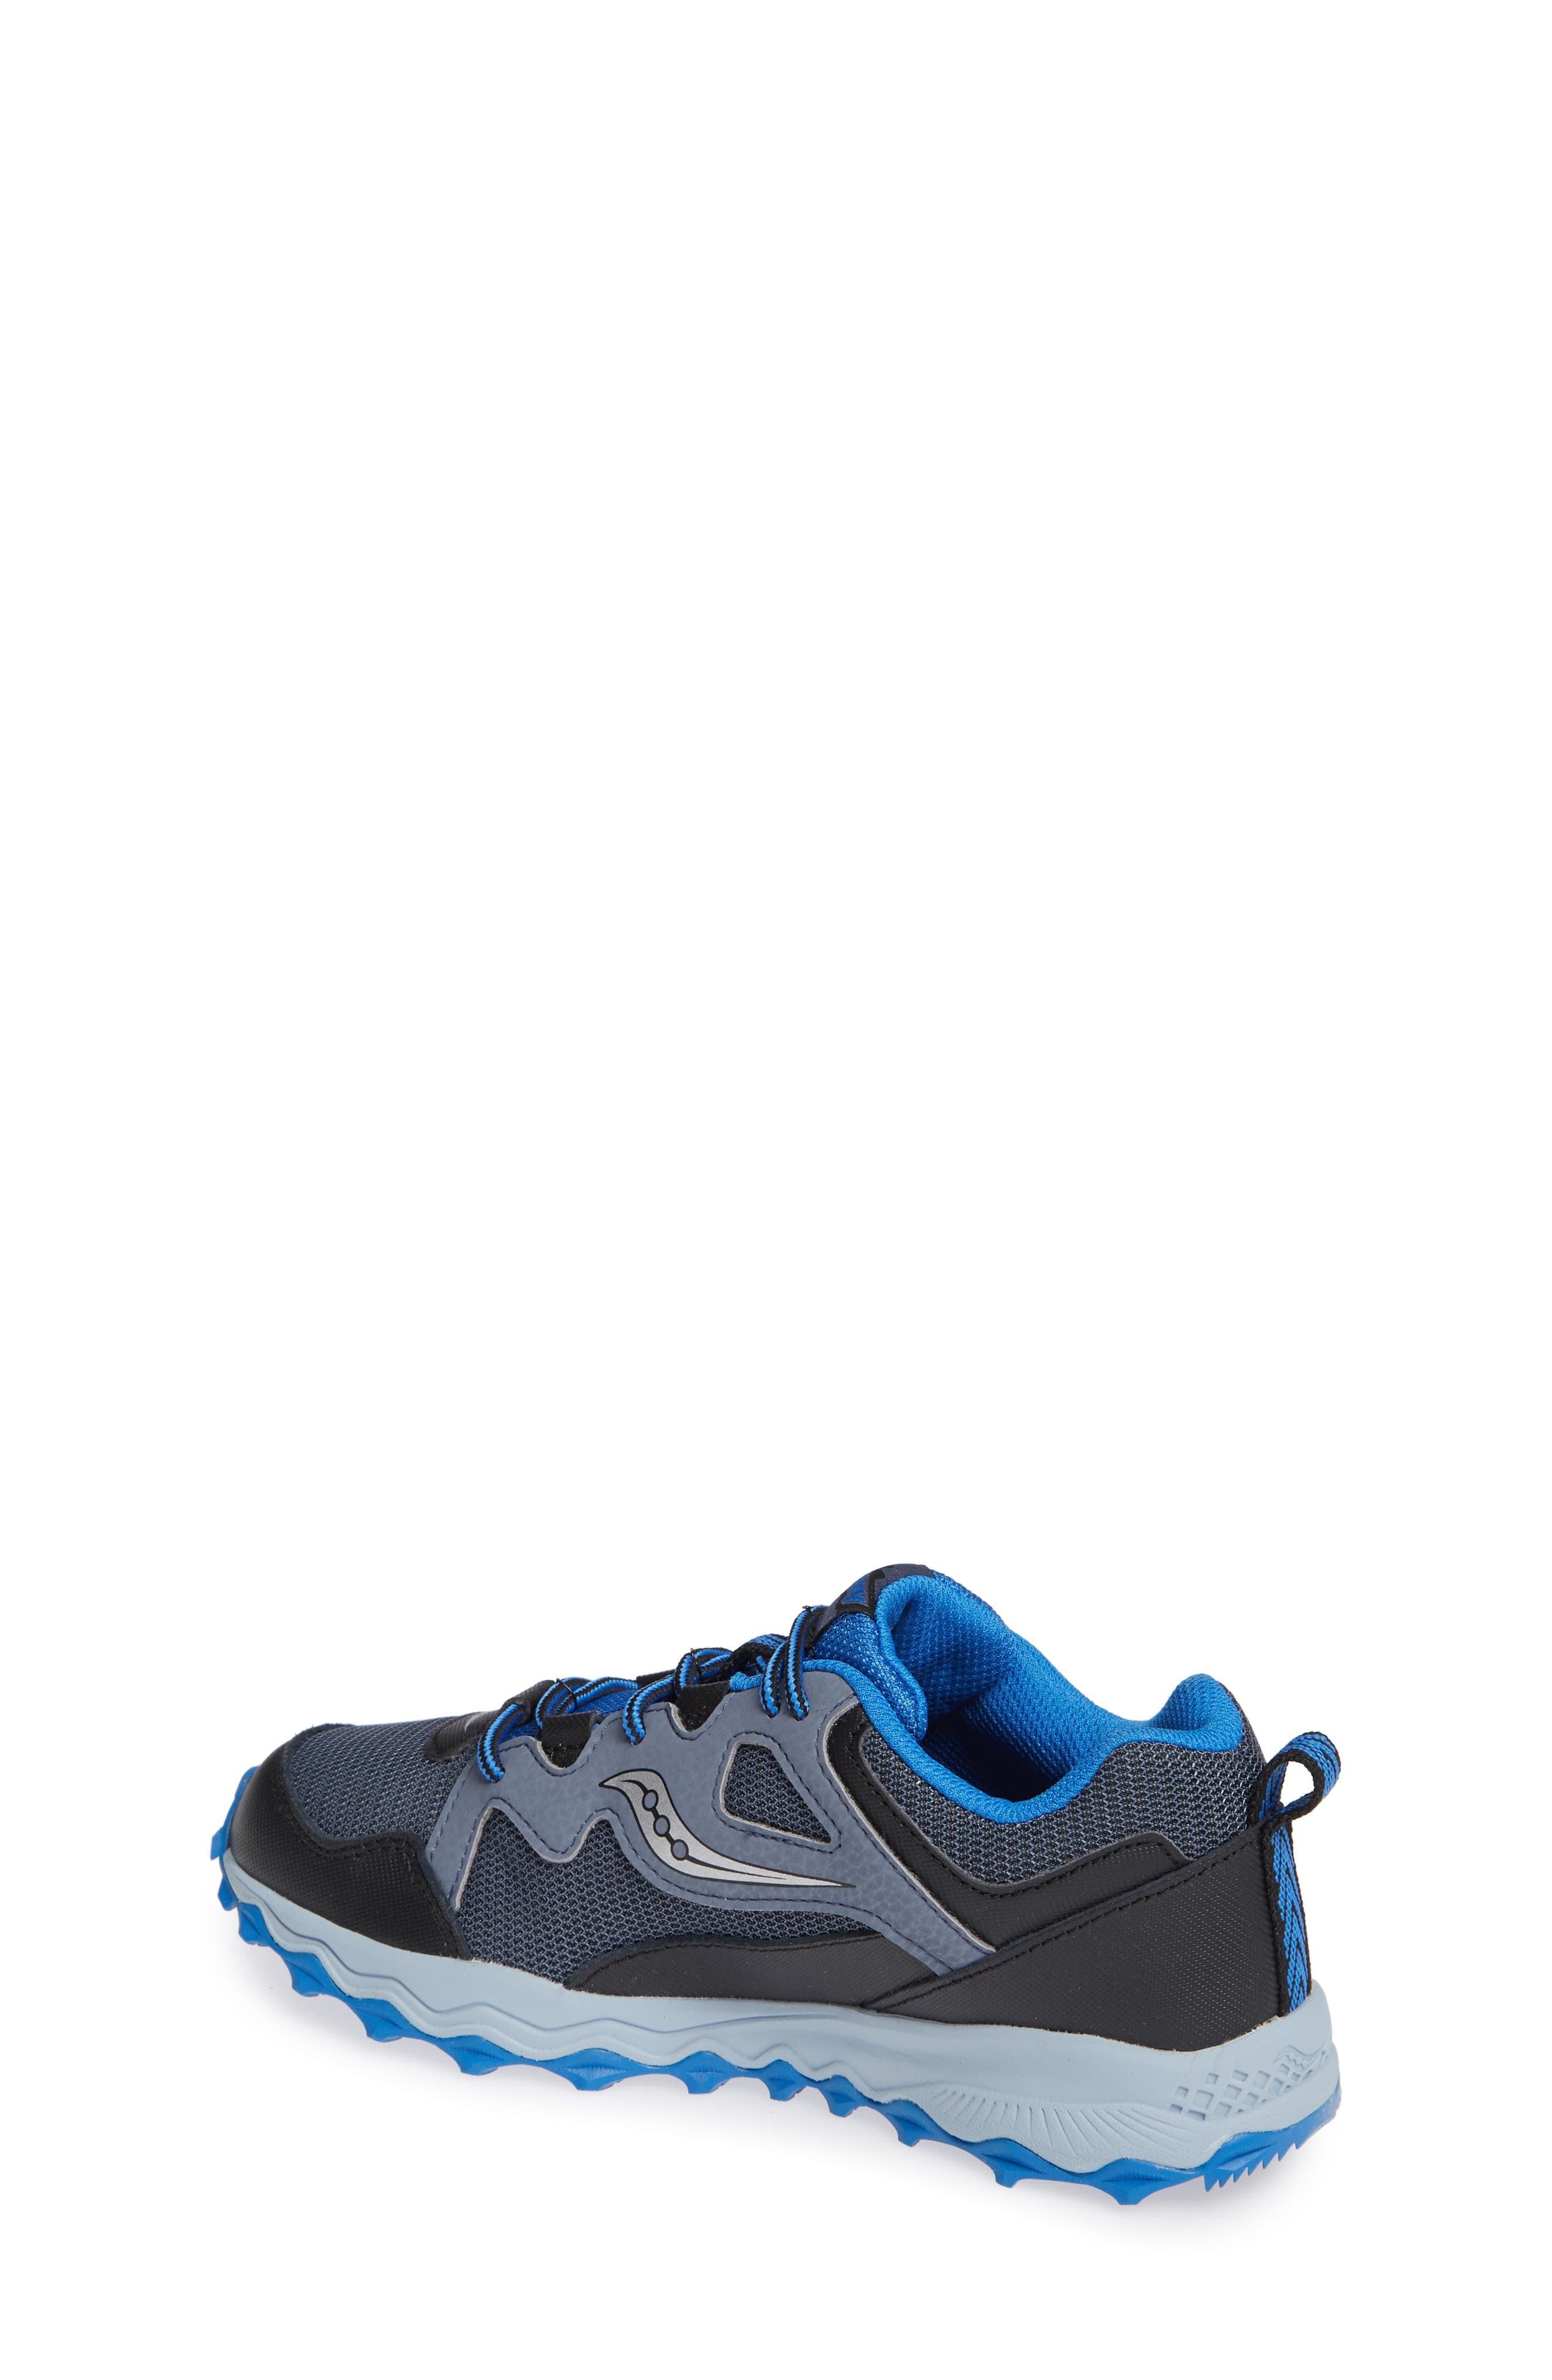 Peregrine Shield 2 Water Repellent Sneaker,                             Alternate thumbnail 2, color,                             GREY LEATHER/ MESH